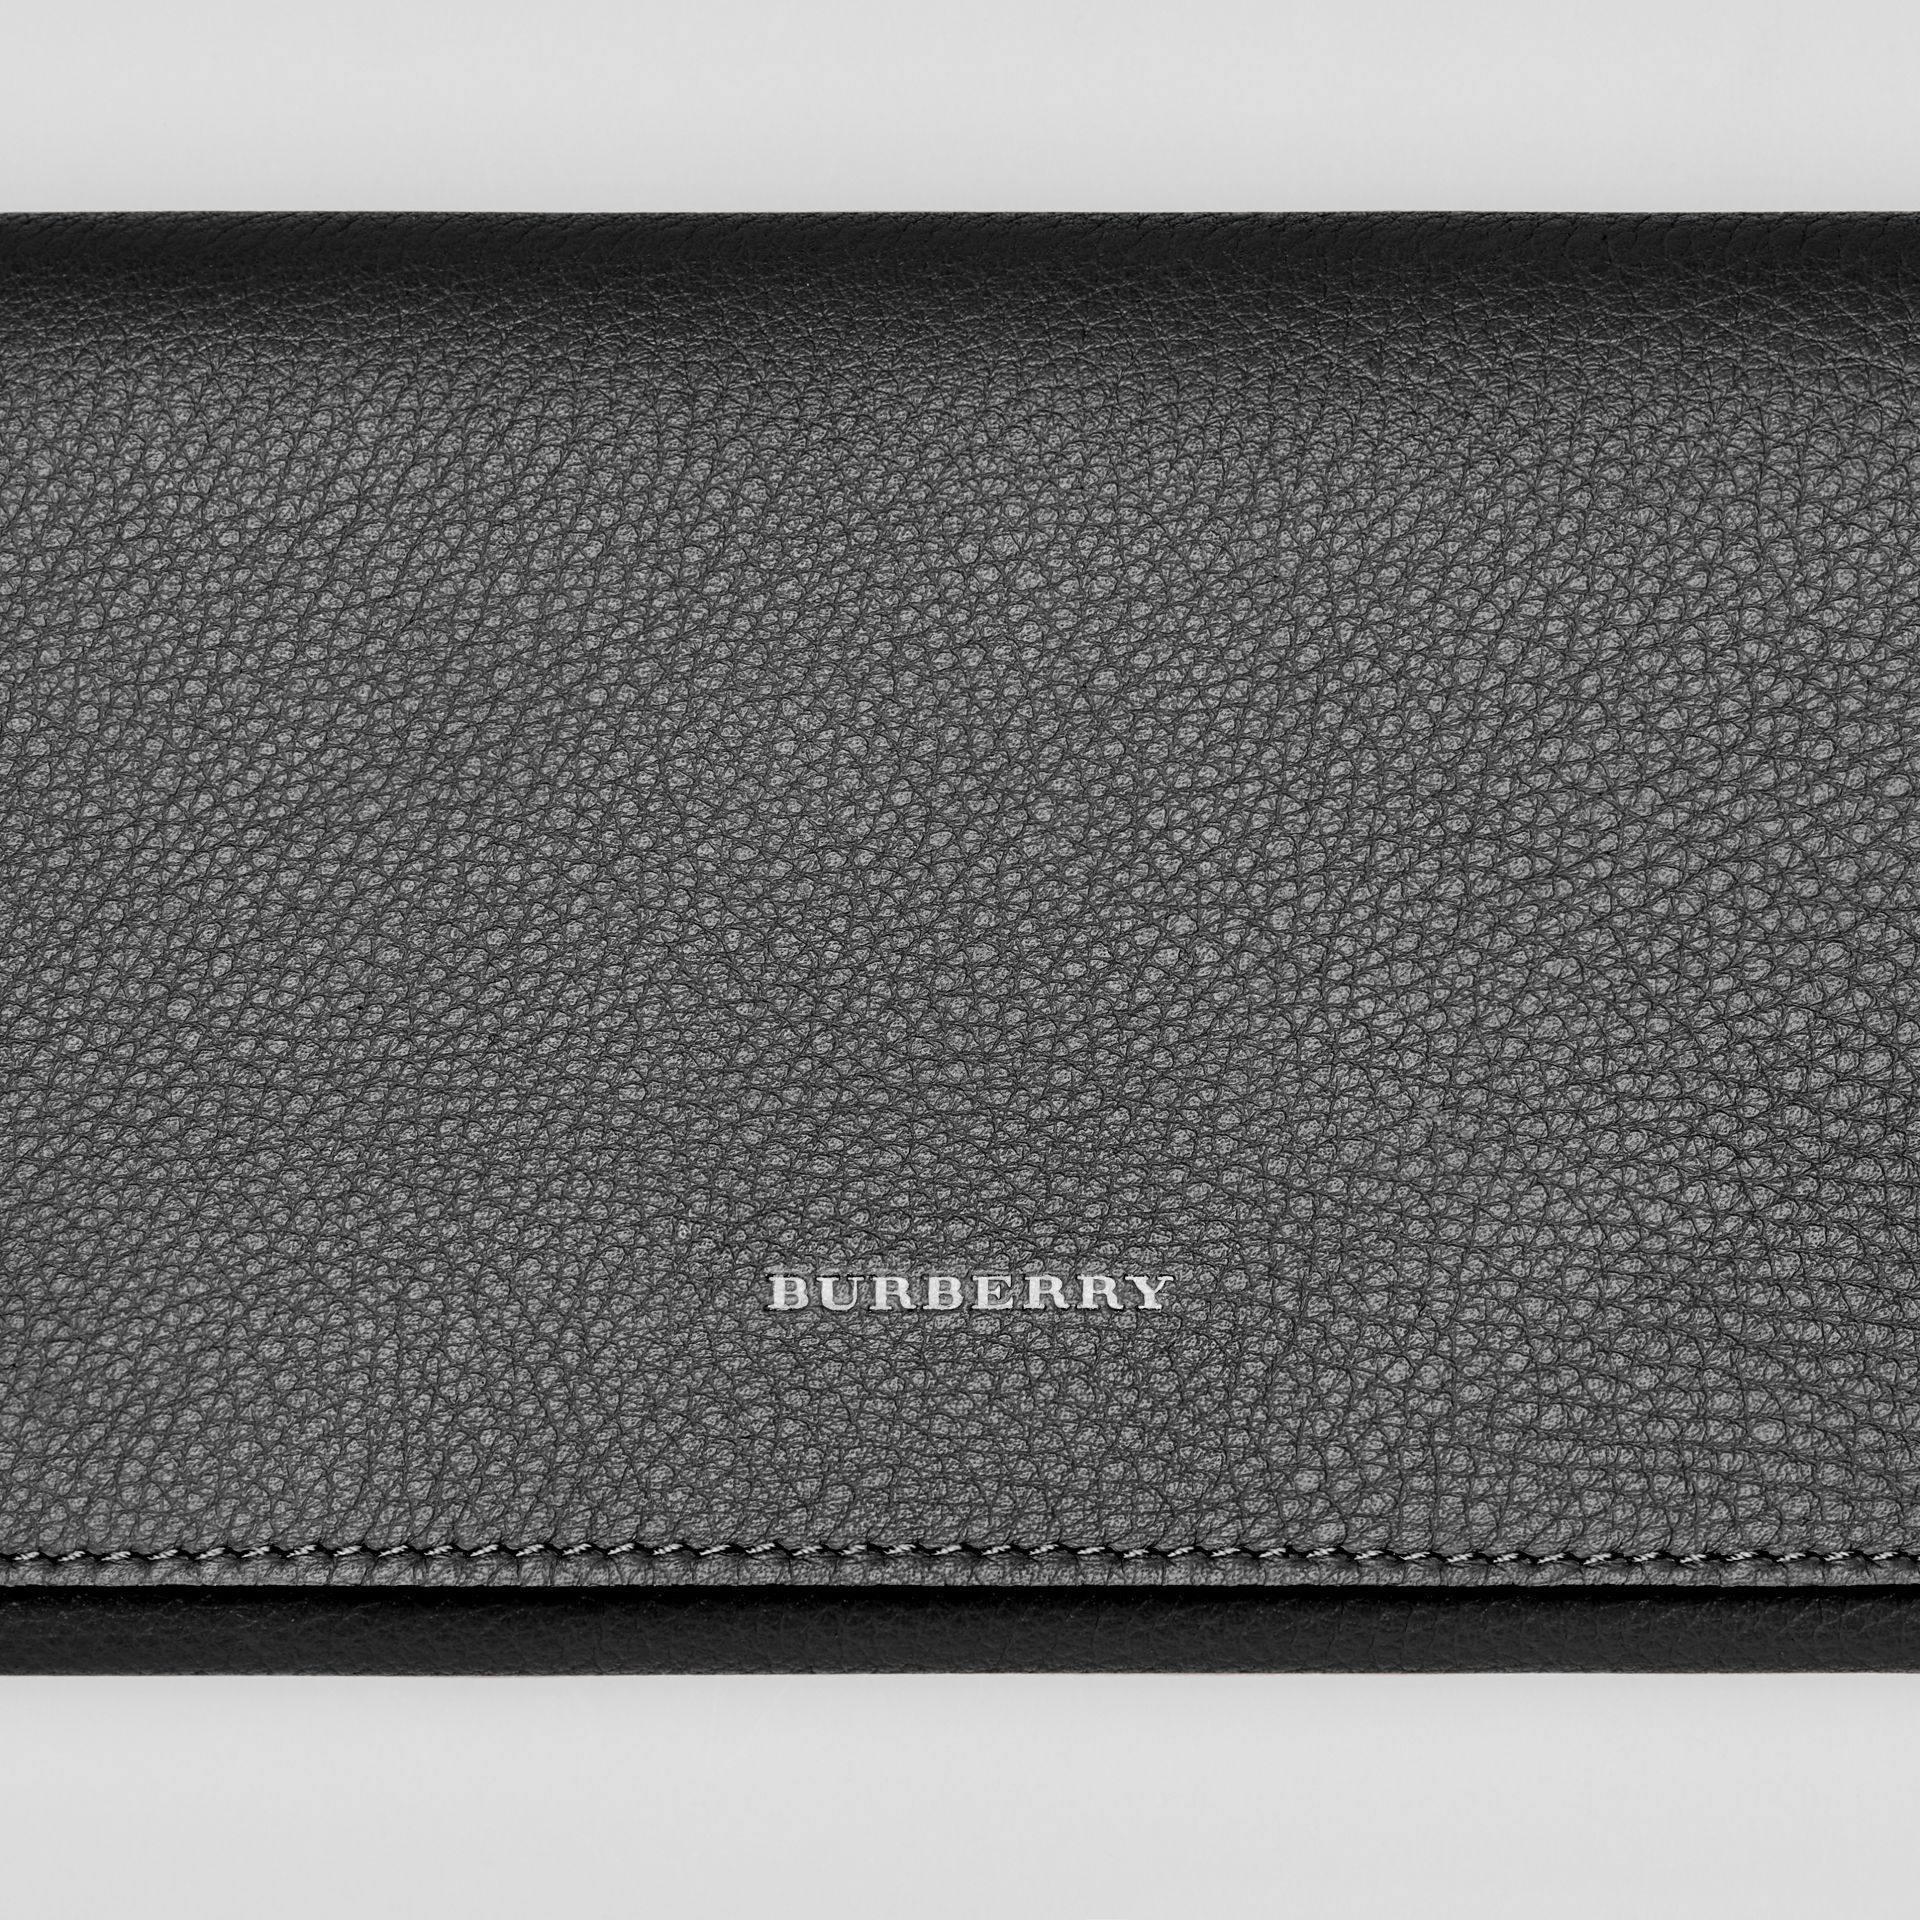 Two-tone Leather Continental Wallet in Black - Women | Burberry - gallery image 1